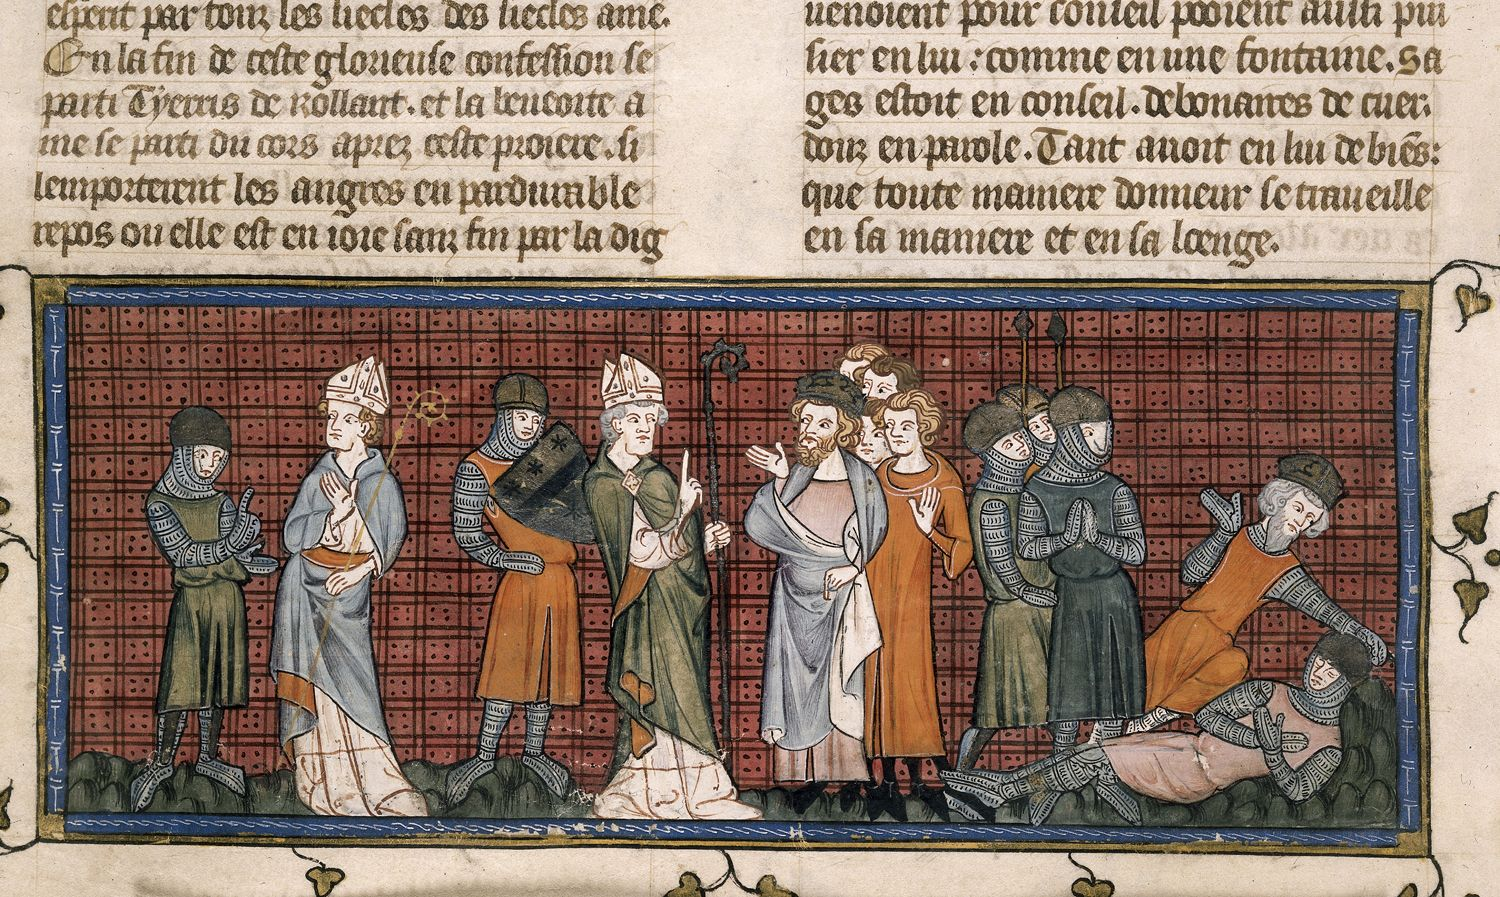 Chroniques de France ou de Saint-Denis (BL, Royal 16 G VI, f. 180v. )